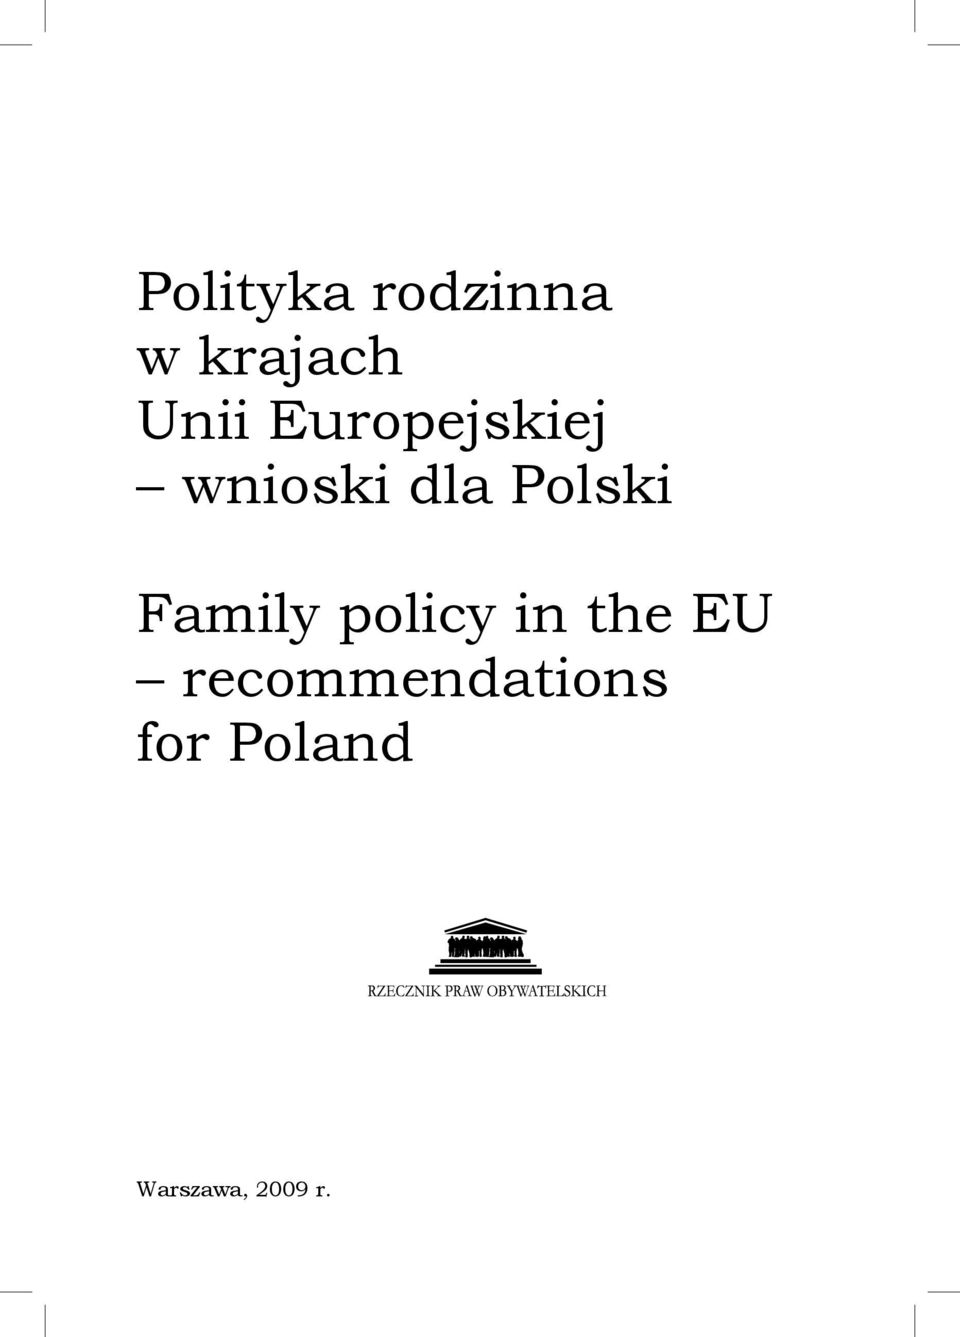 Family policy in the eu